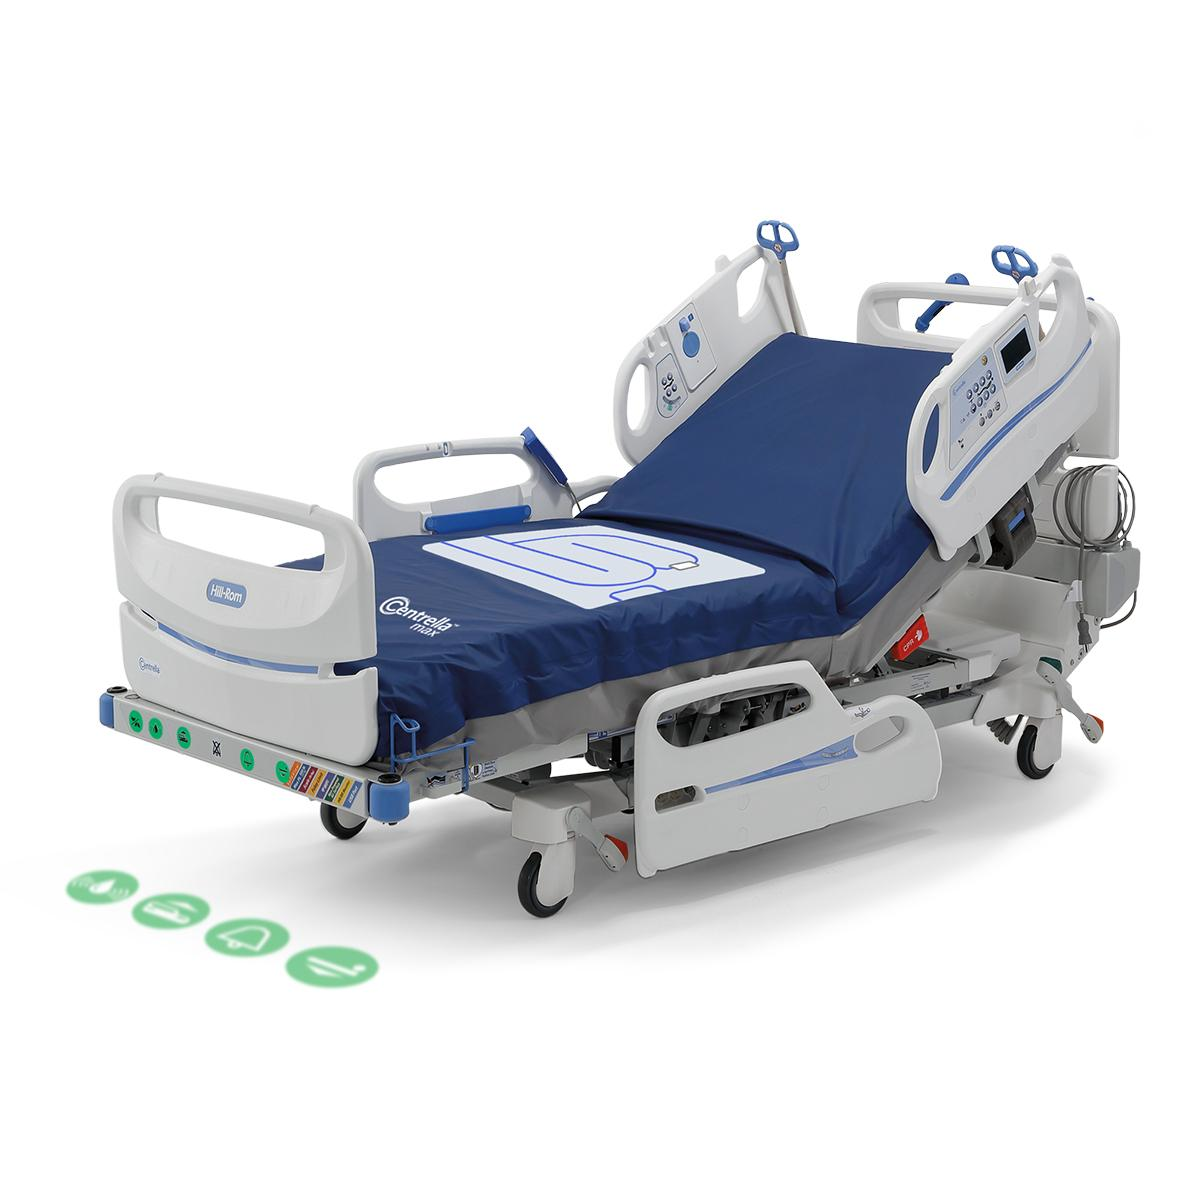 WatchCare Incontinence Management System in use on a Centrella Smart+ Bed